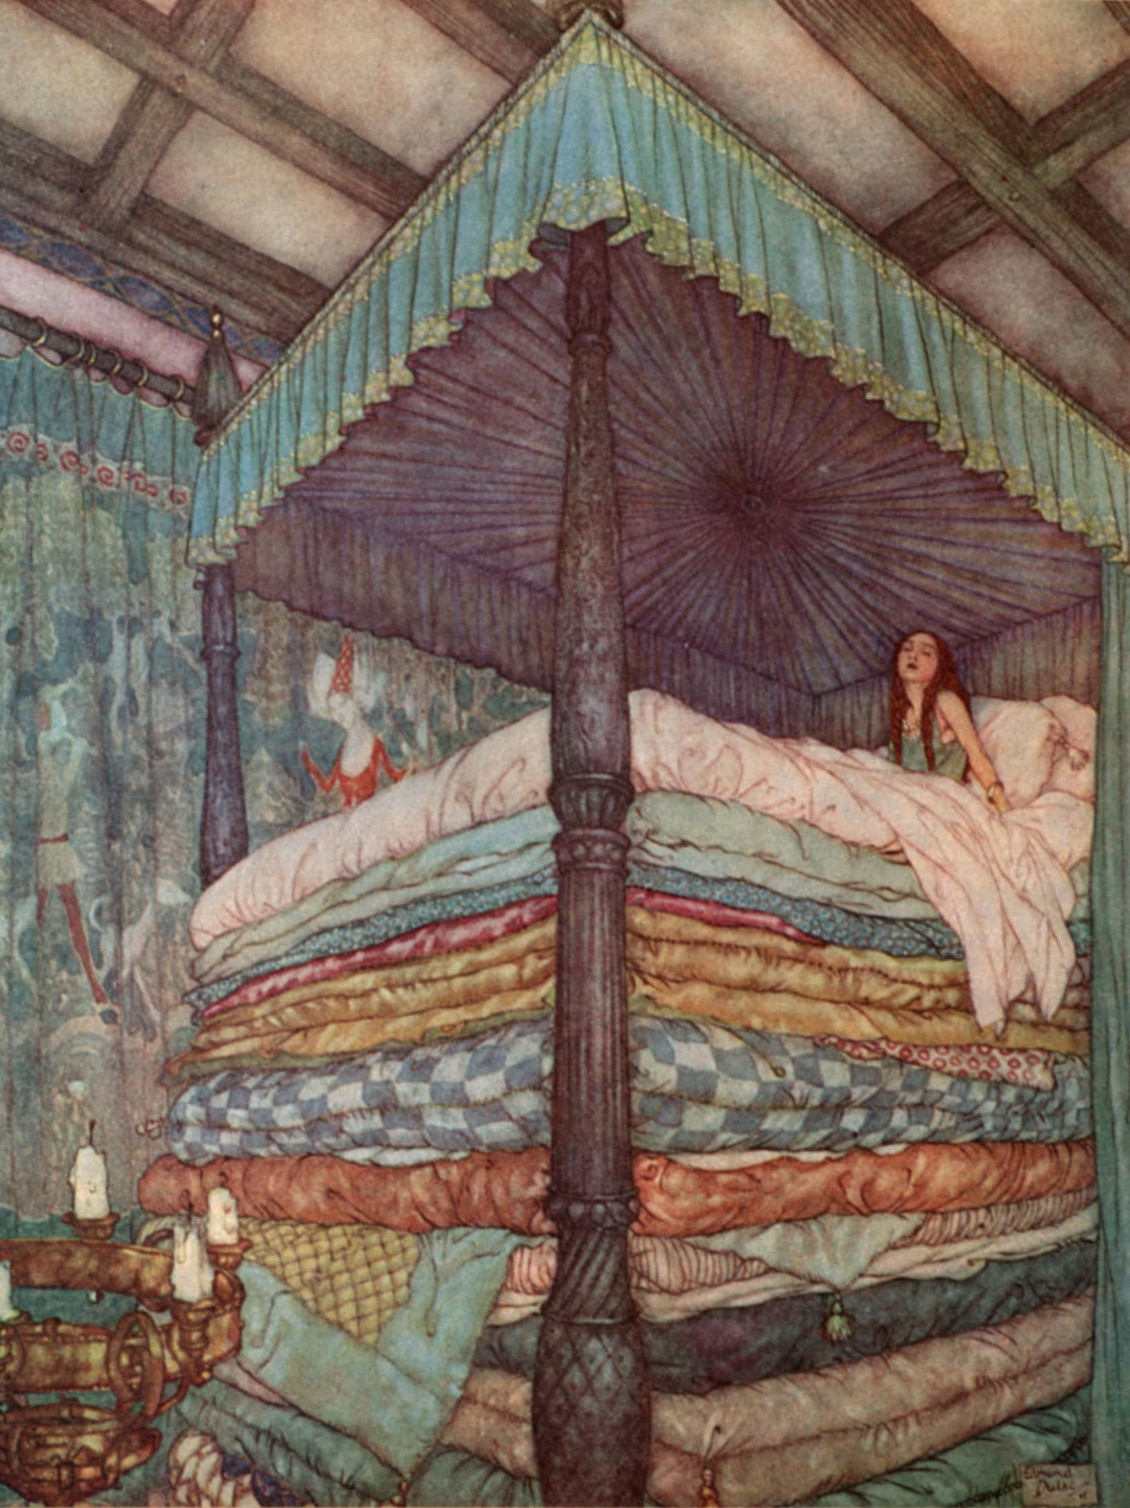 The Princess and Pea, illustration by Edmund Dulac (1911)